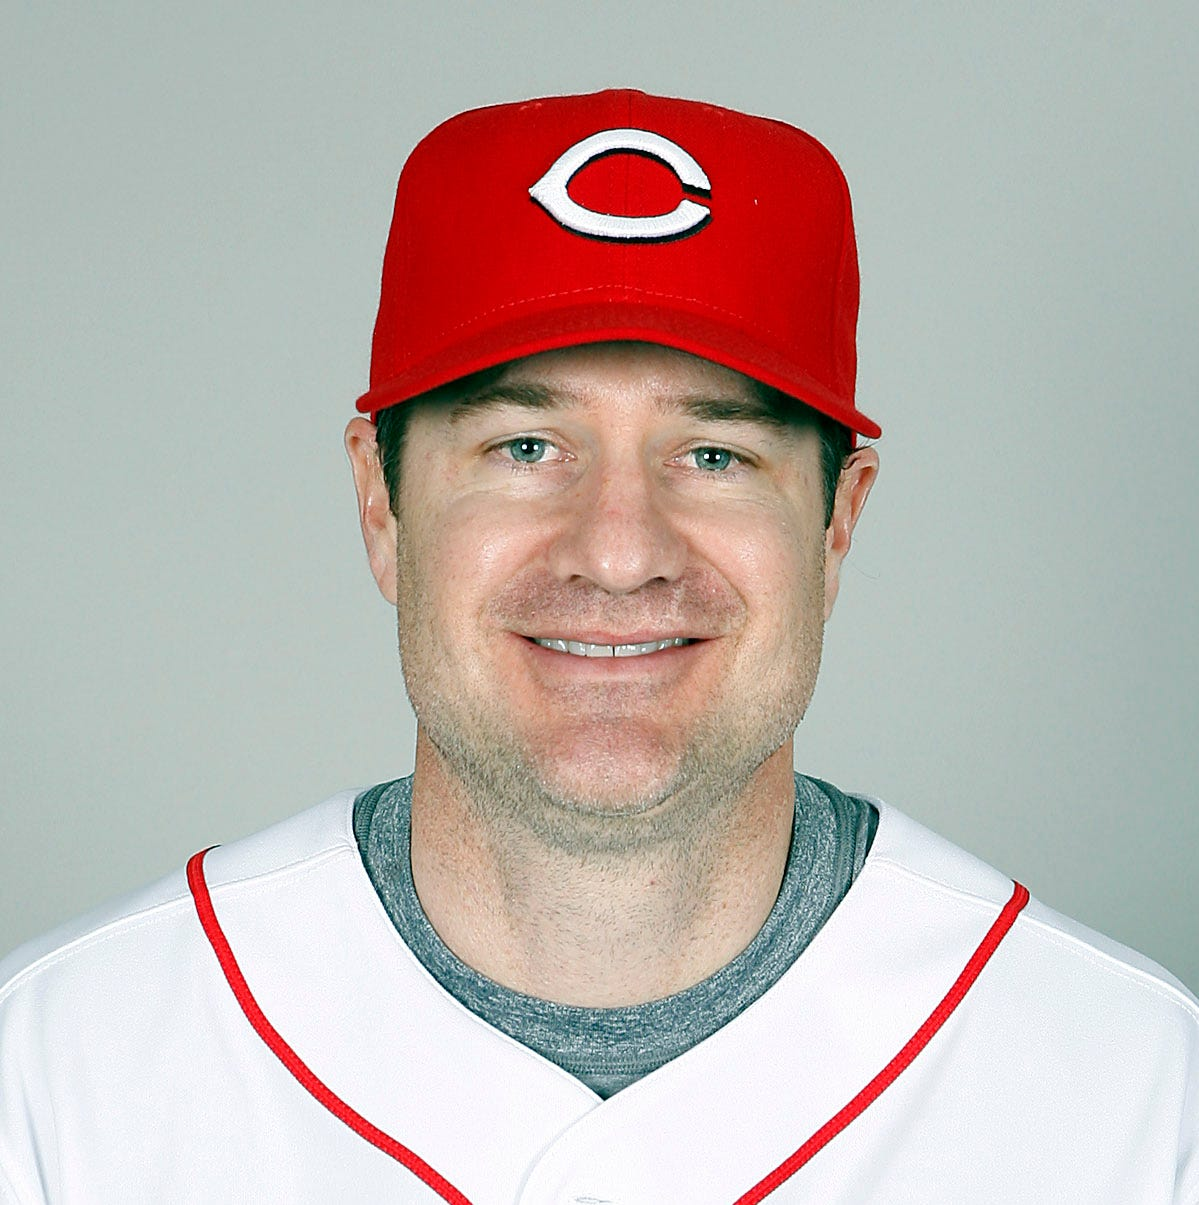 Cincinnati Reds choose David Bell as their new manager